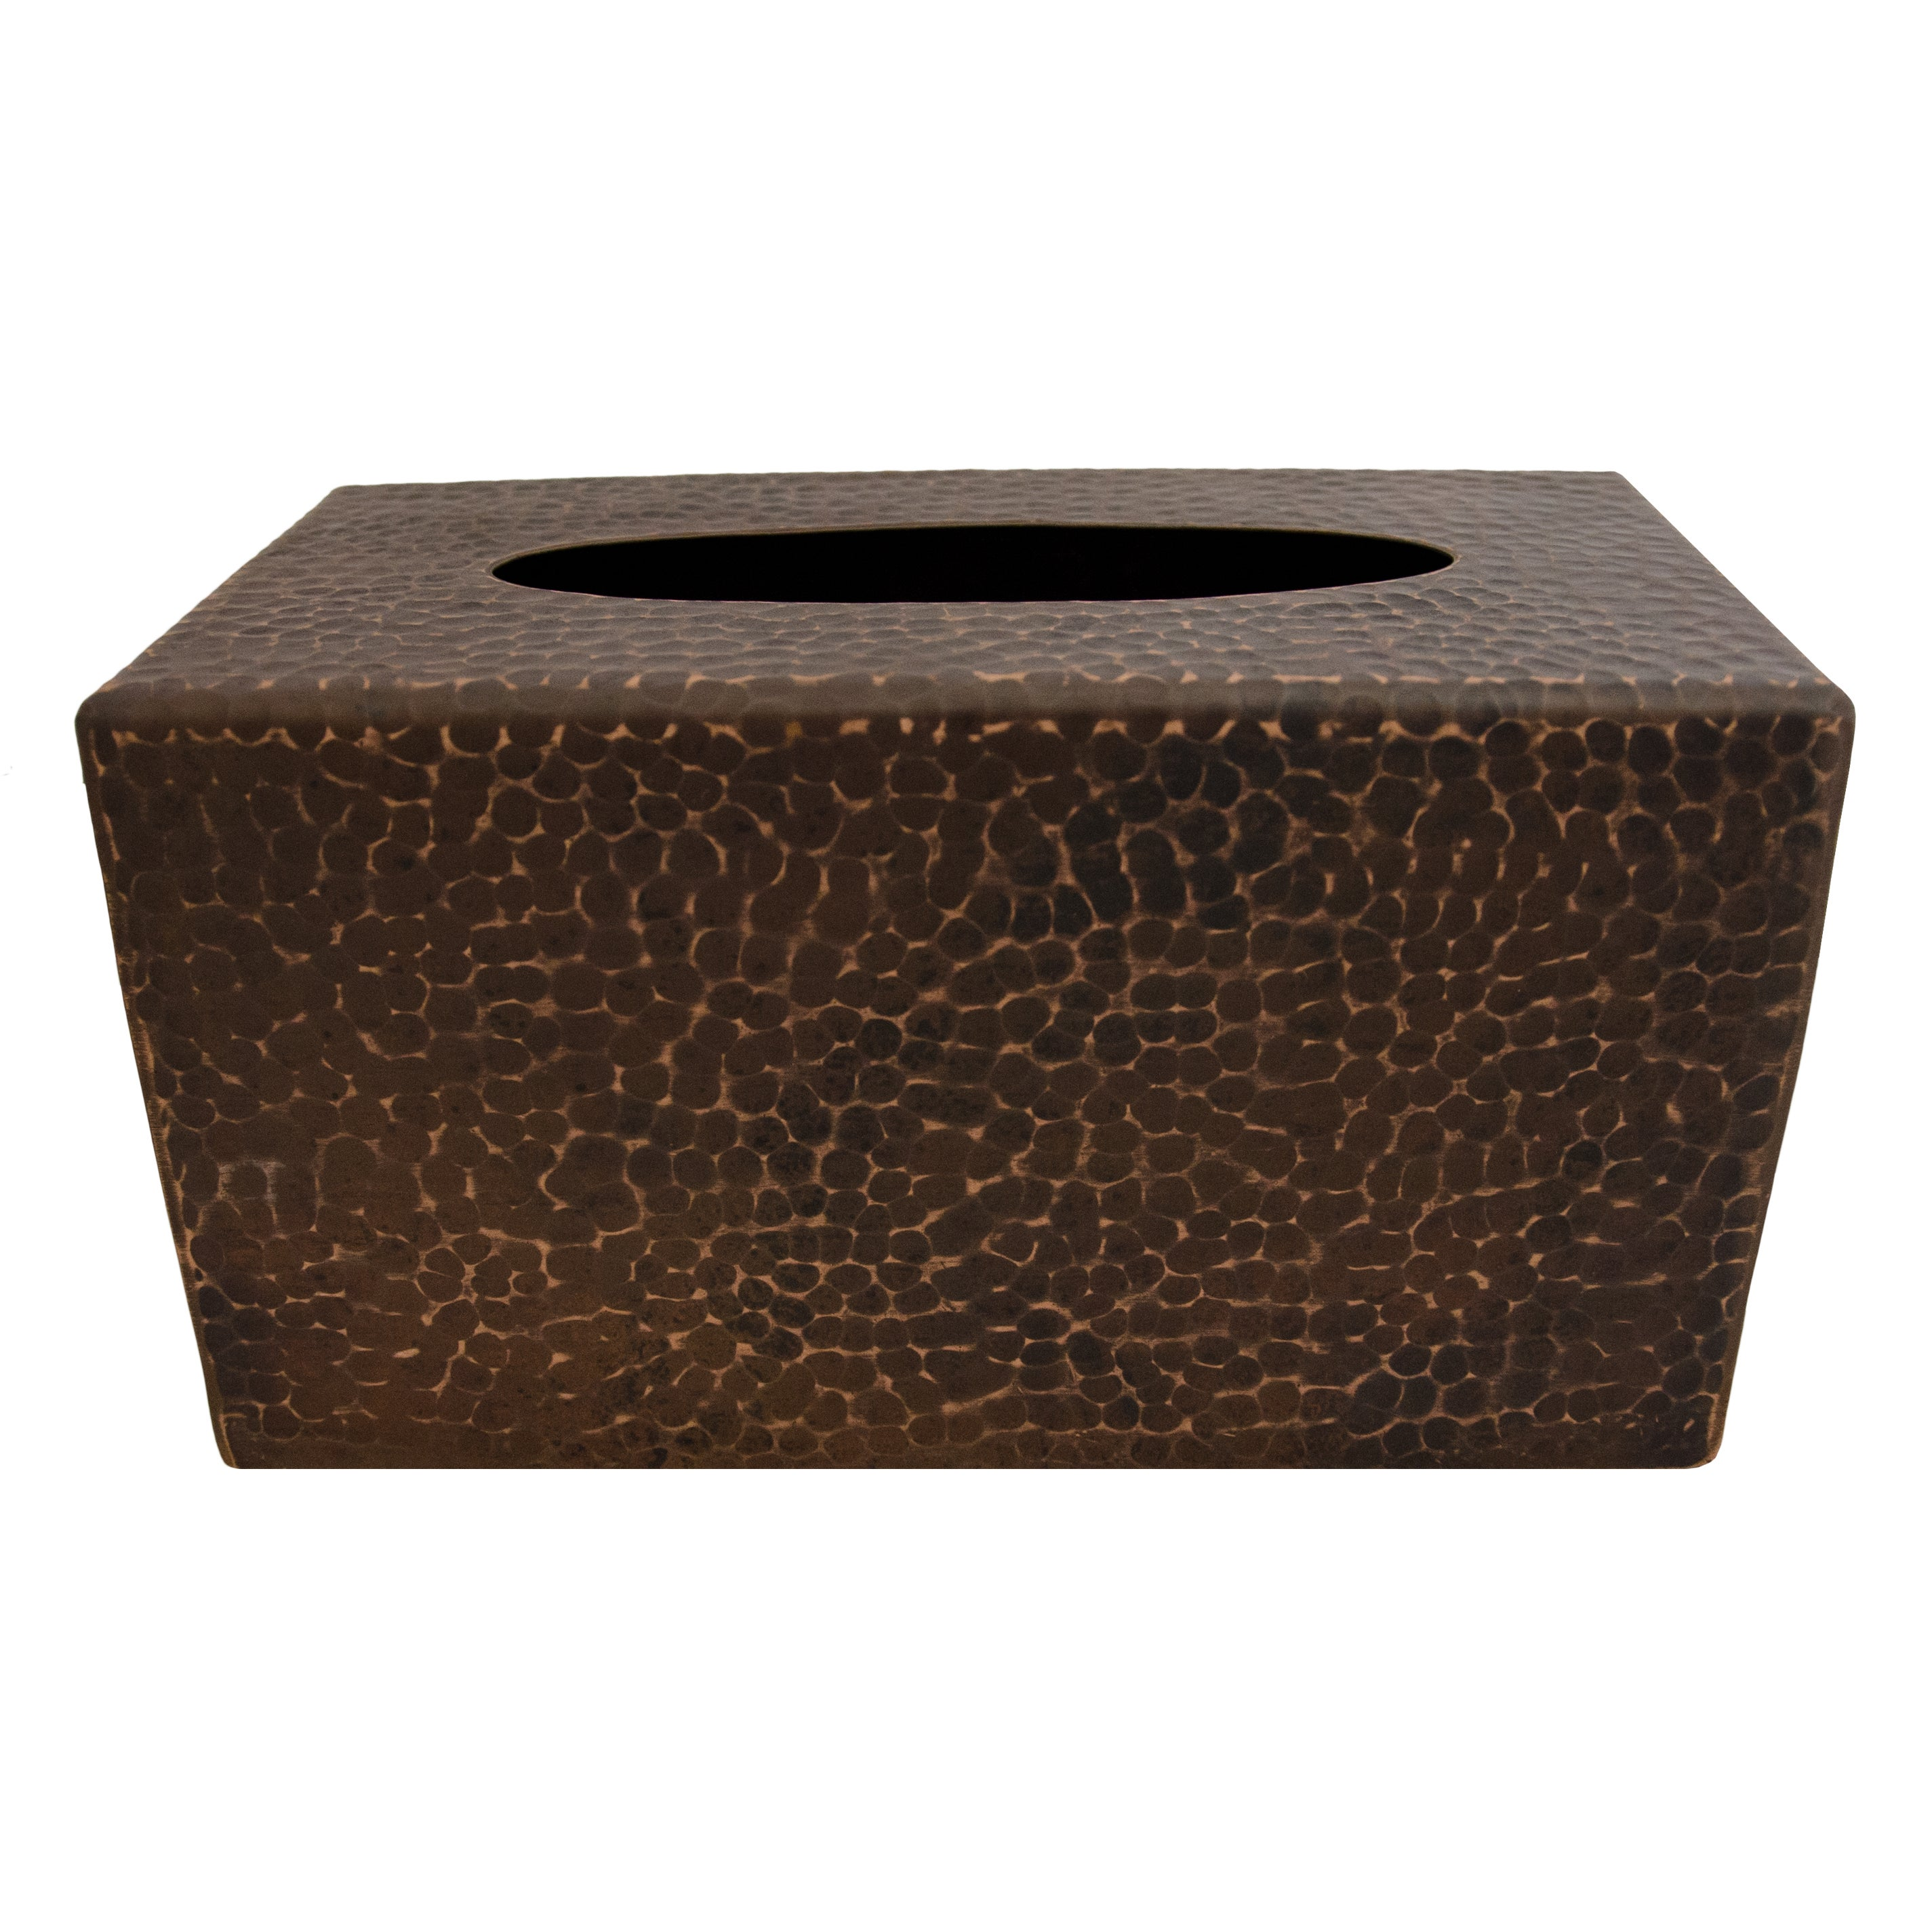 Large Rectangular Hand Hammered Copper Tissue Box Cover Free Shipping Today 13535695